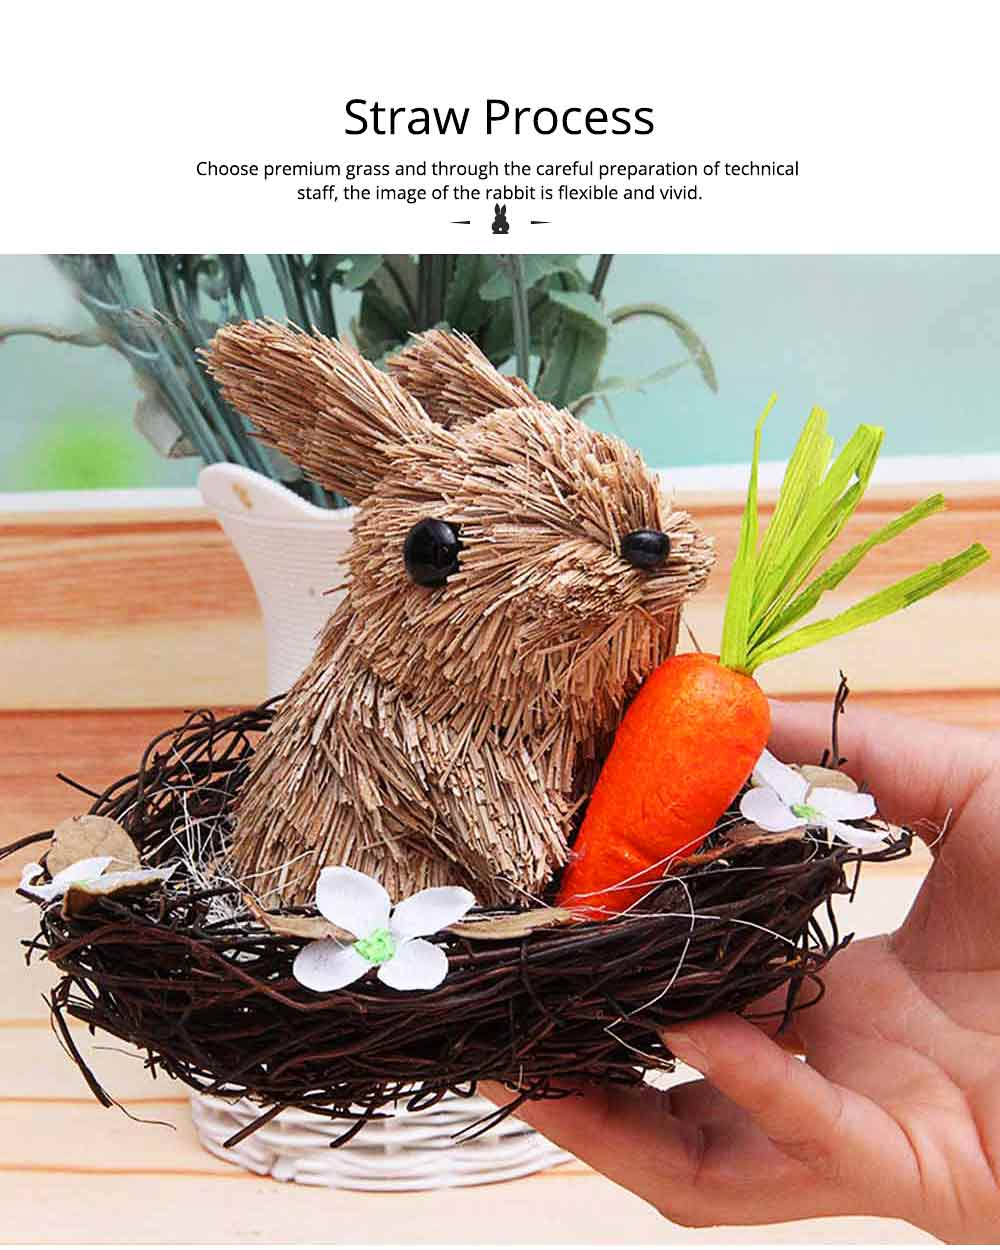 Easter Decorations - Hand-made Straw Bunny with Thorns Nest and Carrots, Mall and Shop Pendant 2